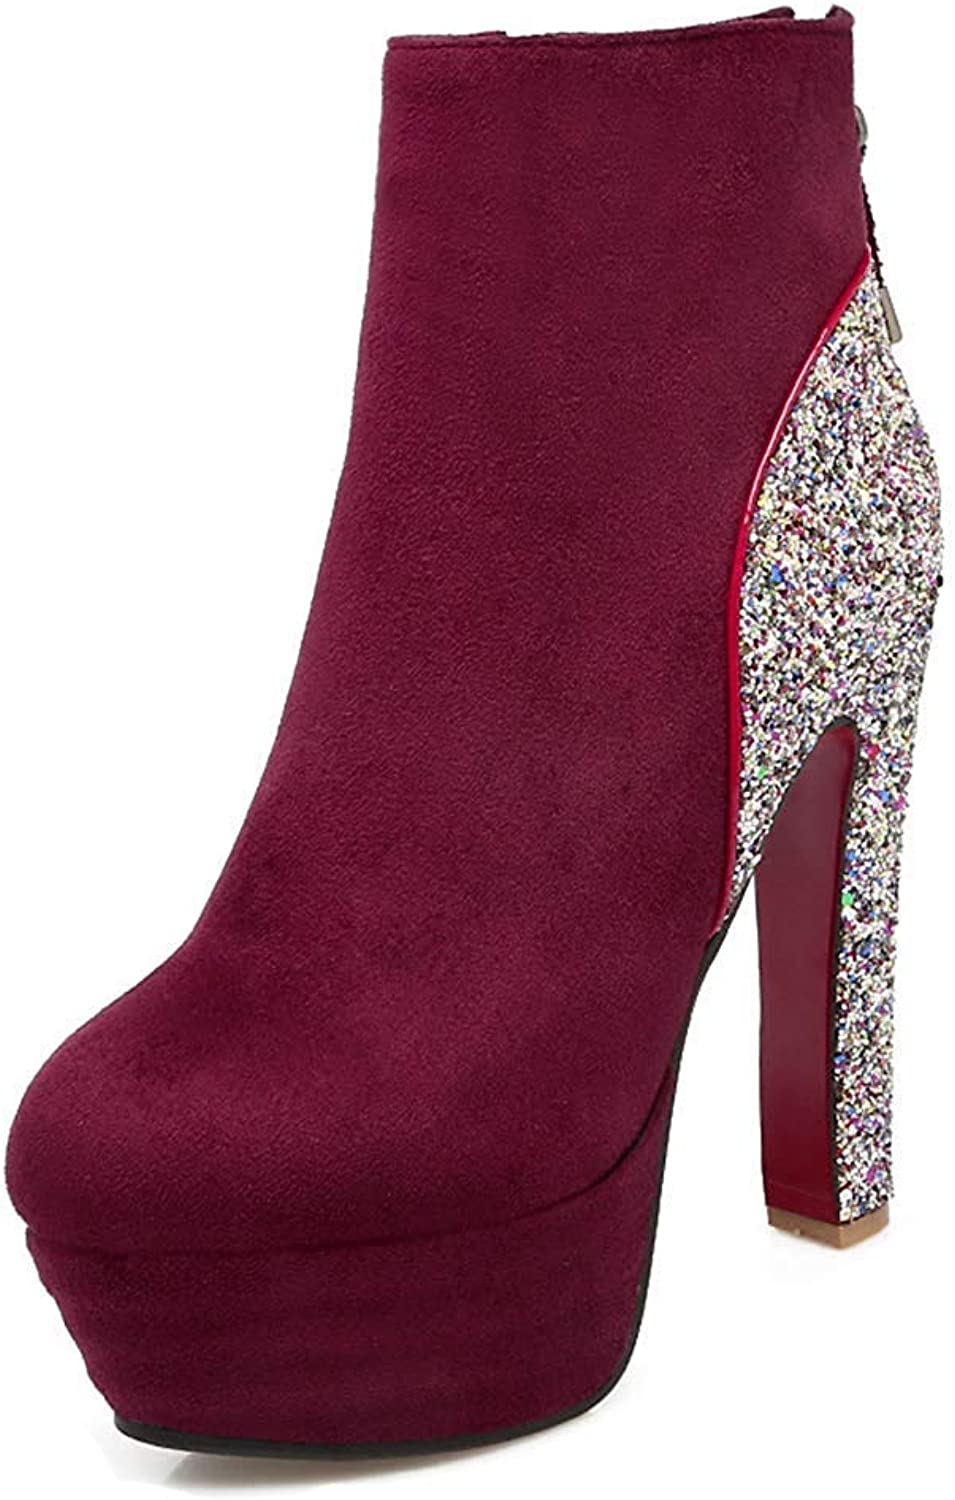 Unm Women's Bling Sequins Inside Zip Up Dress Chunky High Heel Booties Round Toe Platform Ankle Boots with Zipper